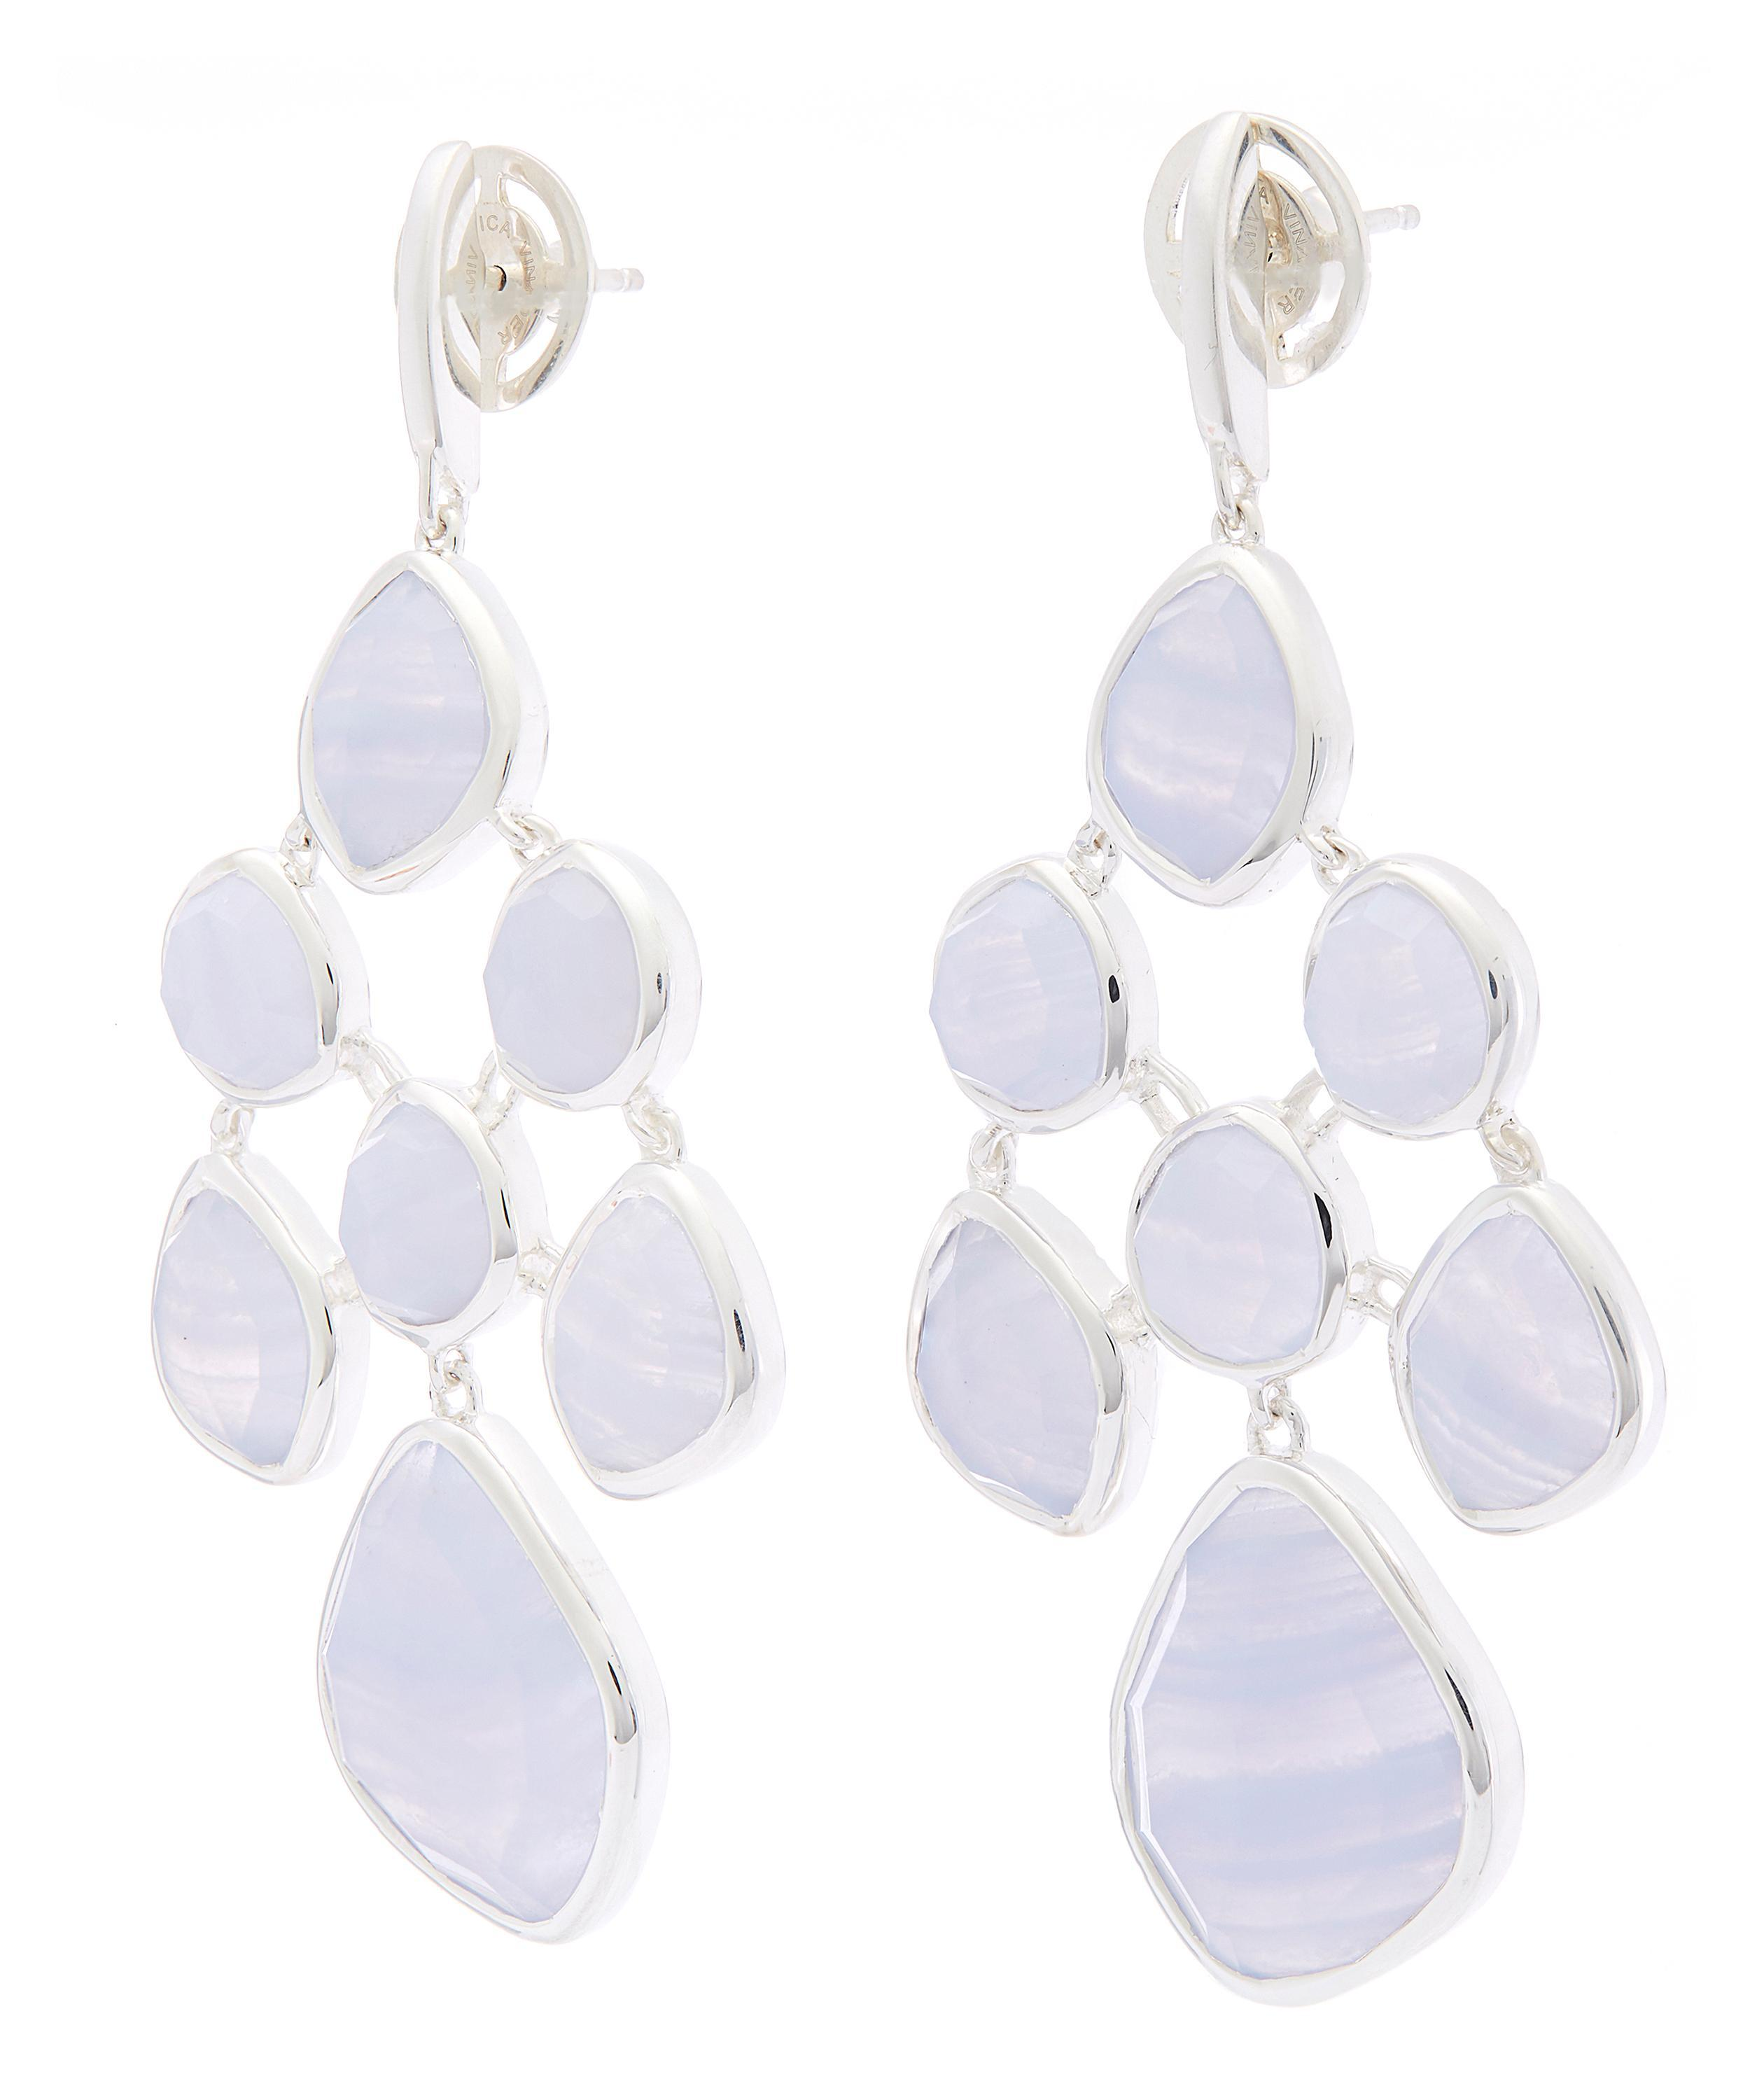 Sterling Silver Siren Mini Nugget Cocktail Earrings Blue Lace Agate Monica Vinader P2nA8Xii